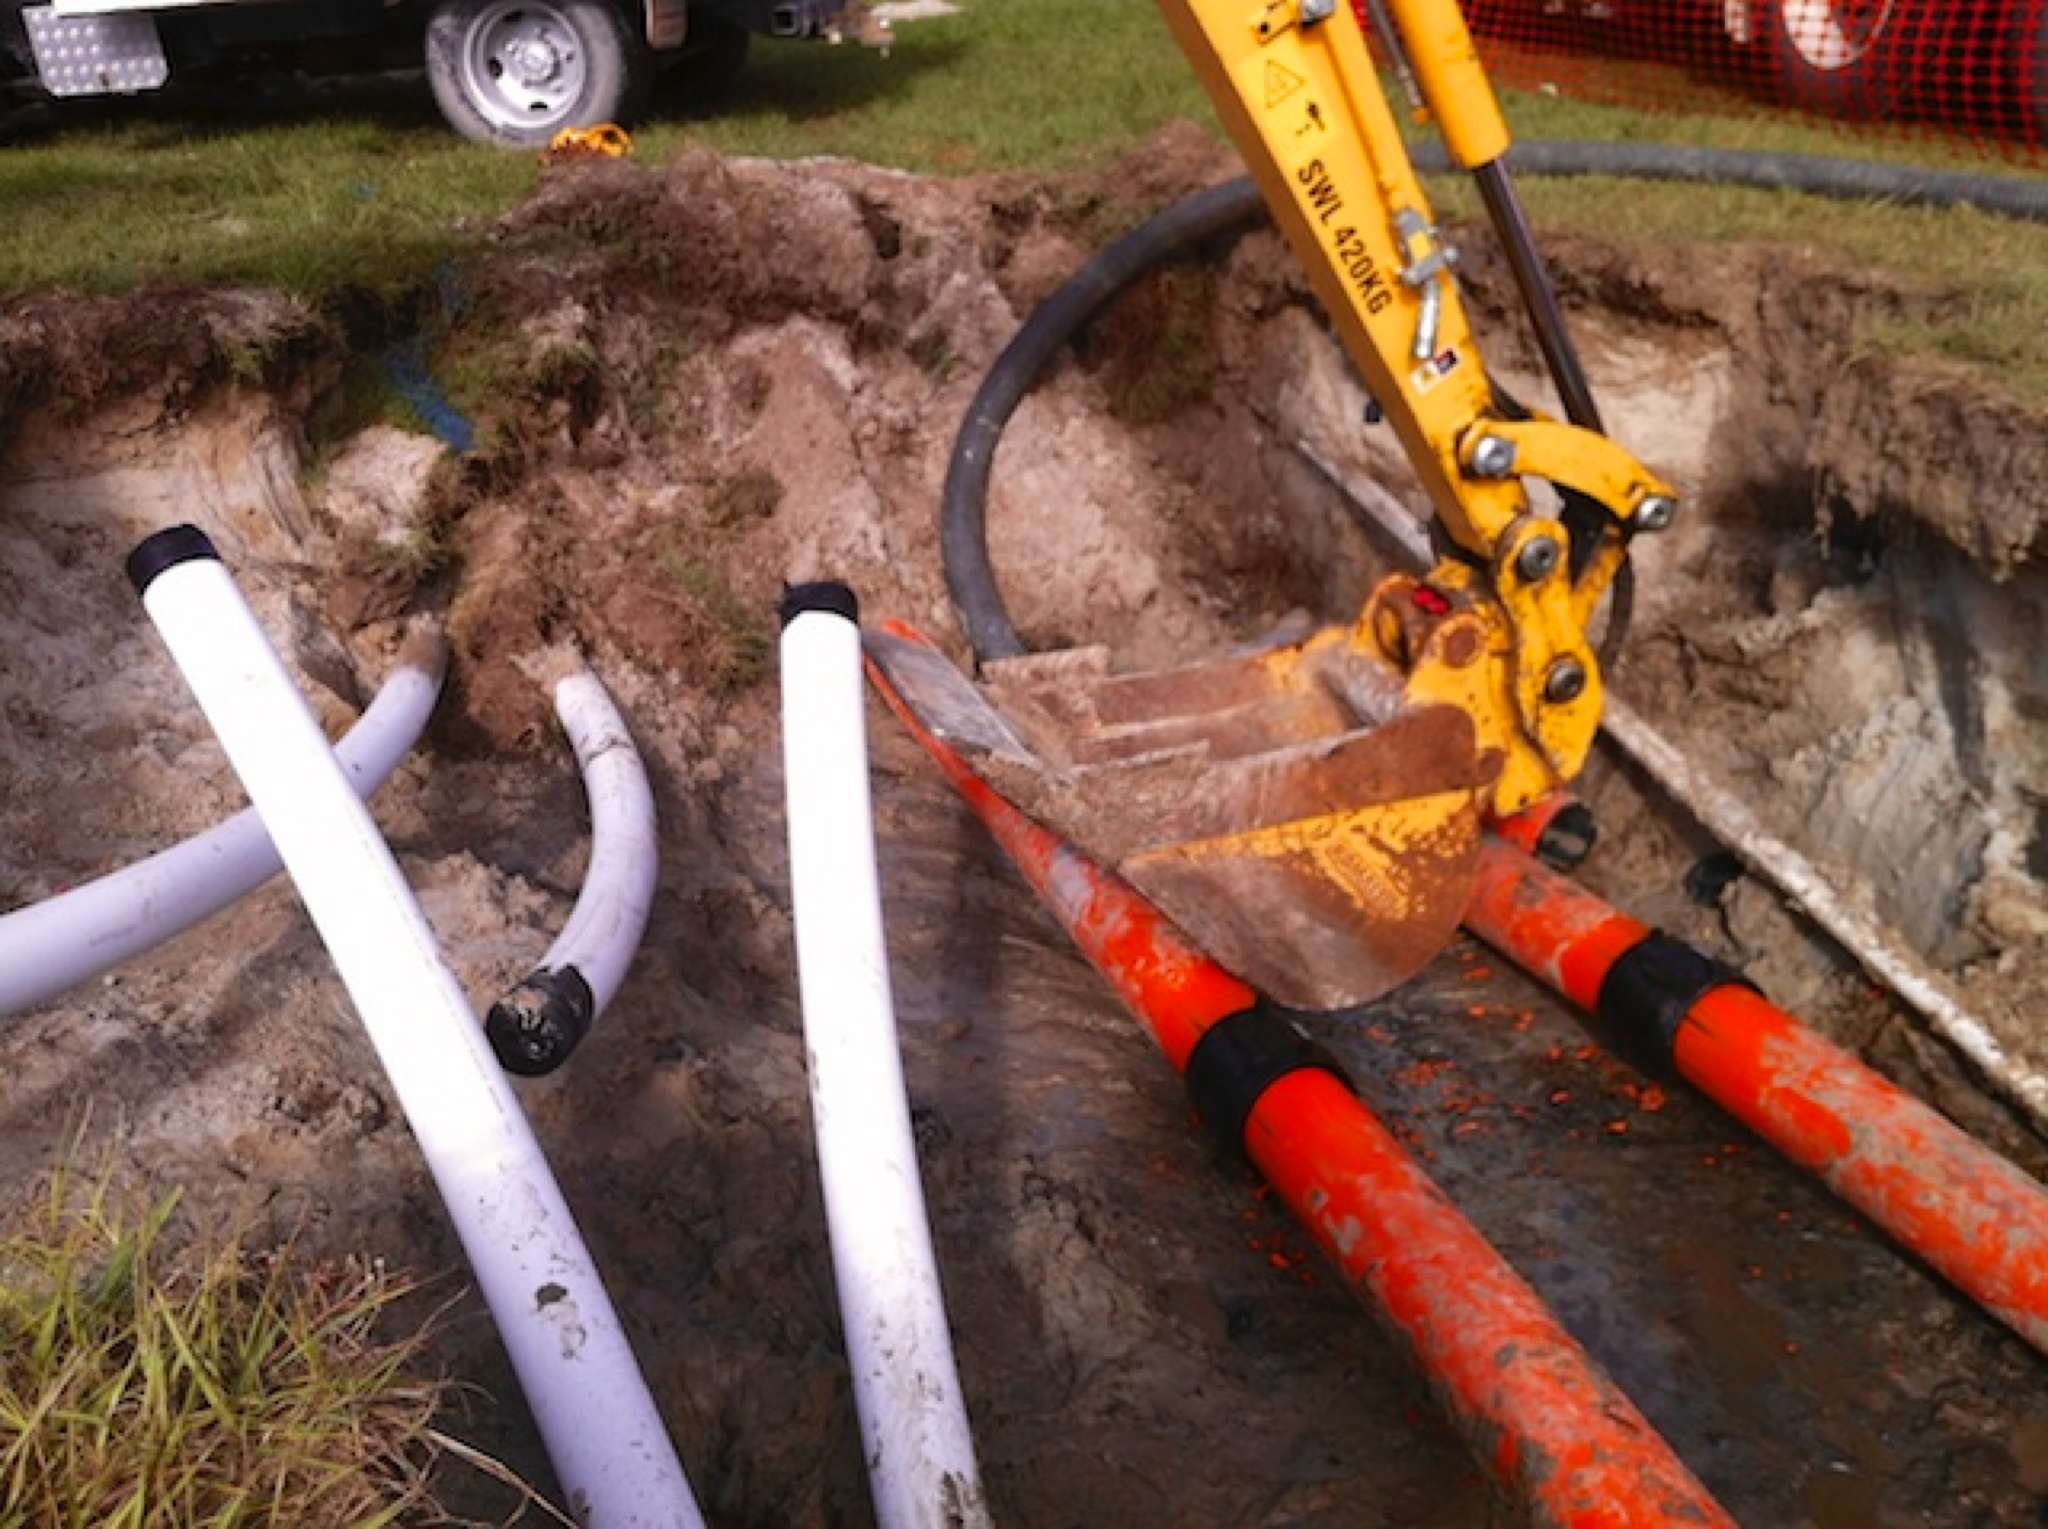 different kinds of pipes on the ground